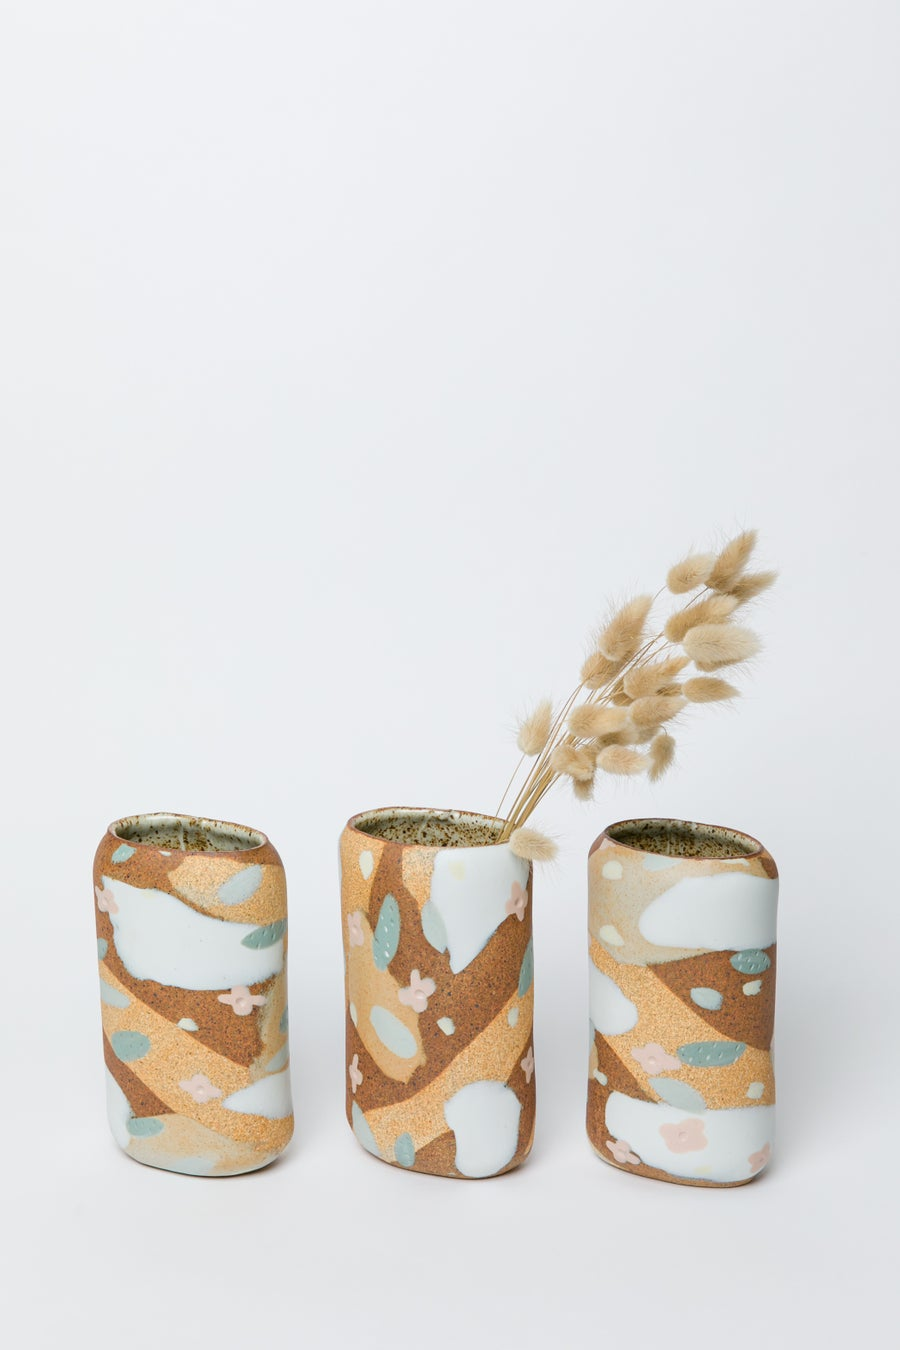 Image of Tall Oval Porcelain Inlay Vase - Desert Sand, Peach Flowers and Sage Leaves